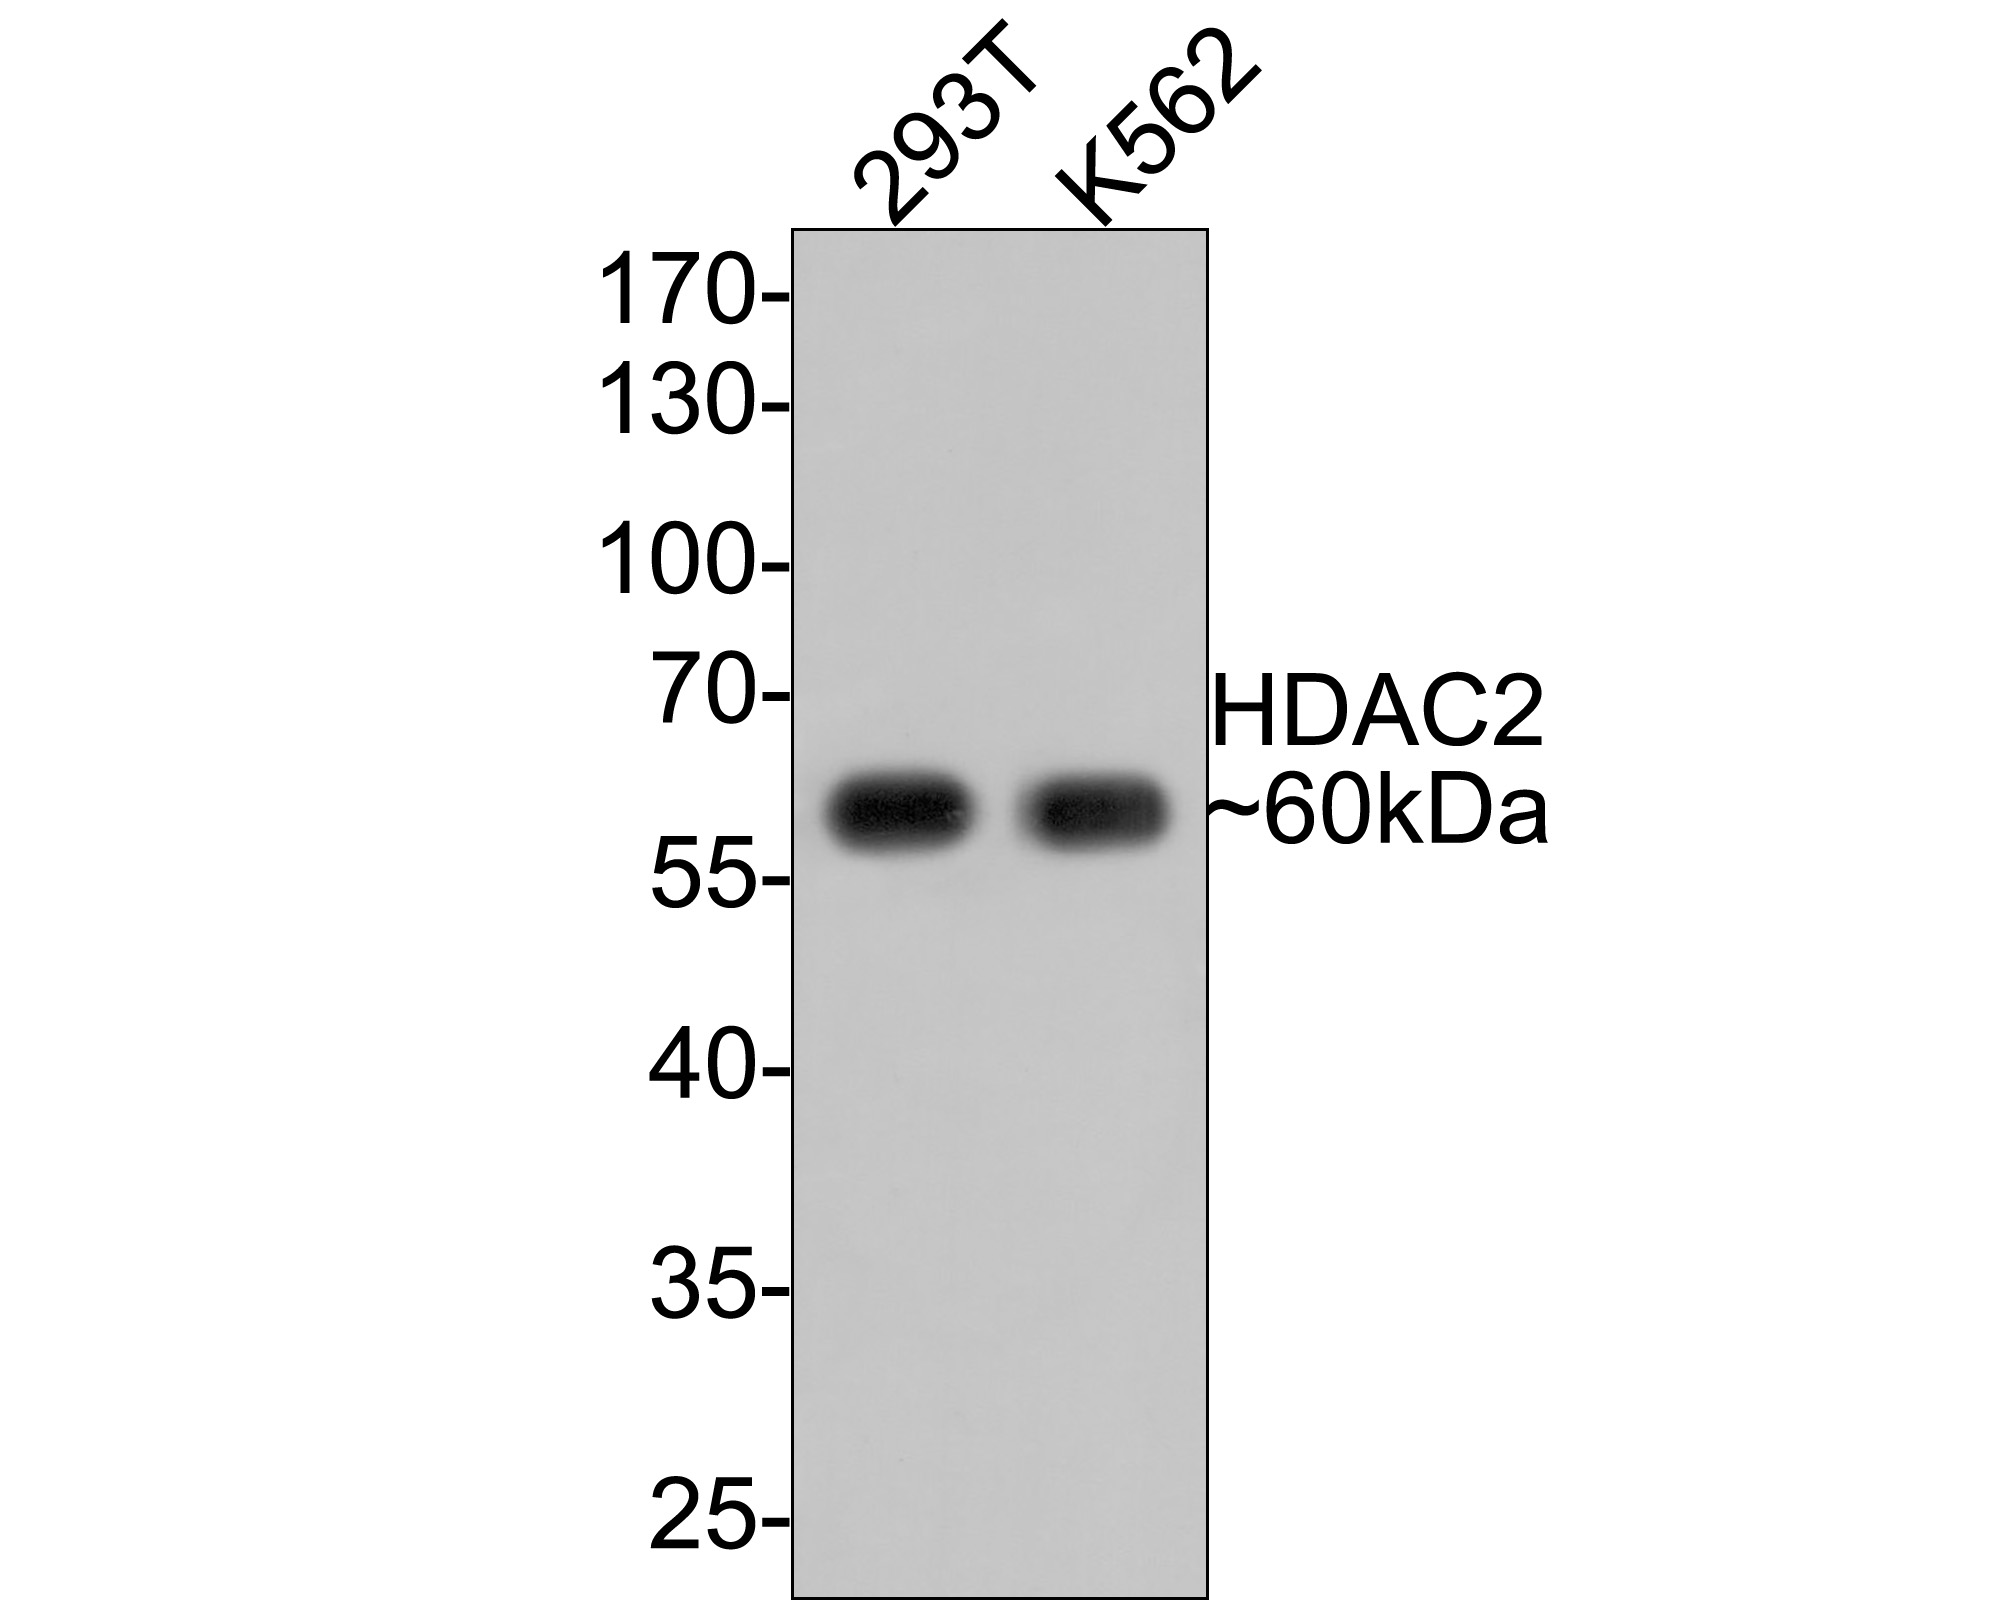 ICC staining of HDAC2 in Hela cells (green). Formalin fixed cells were permeabilized with 0.1% Triton X-100 in TBS for 10 minutes at room temperature and blocked with 1% Blocker BSA for 15 minutes at room temperature. Cells were probed with the primary antibody (ET1607-78, 1/50) for 1 hour at room temperature, washed with PBS. Alexa Fluor®488 Goat anti-Rabbit IgG was used as the secondary antibody at 1/1,000 dilution. The nuclear counter stain is DAPI (blue).